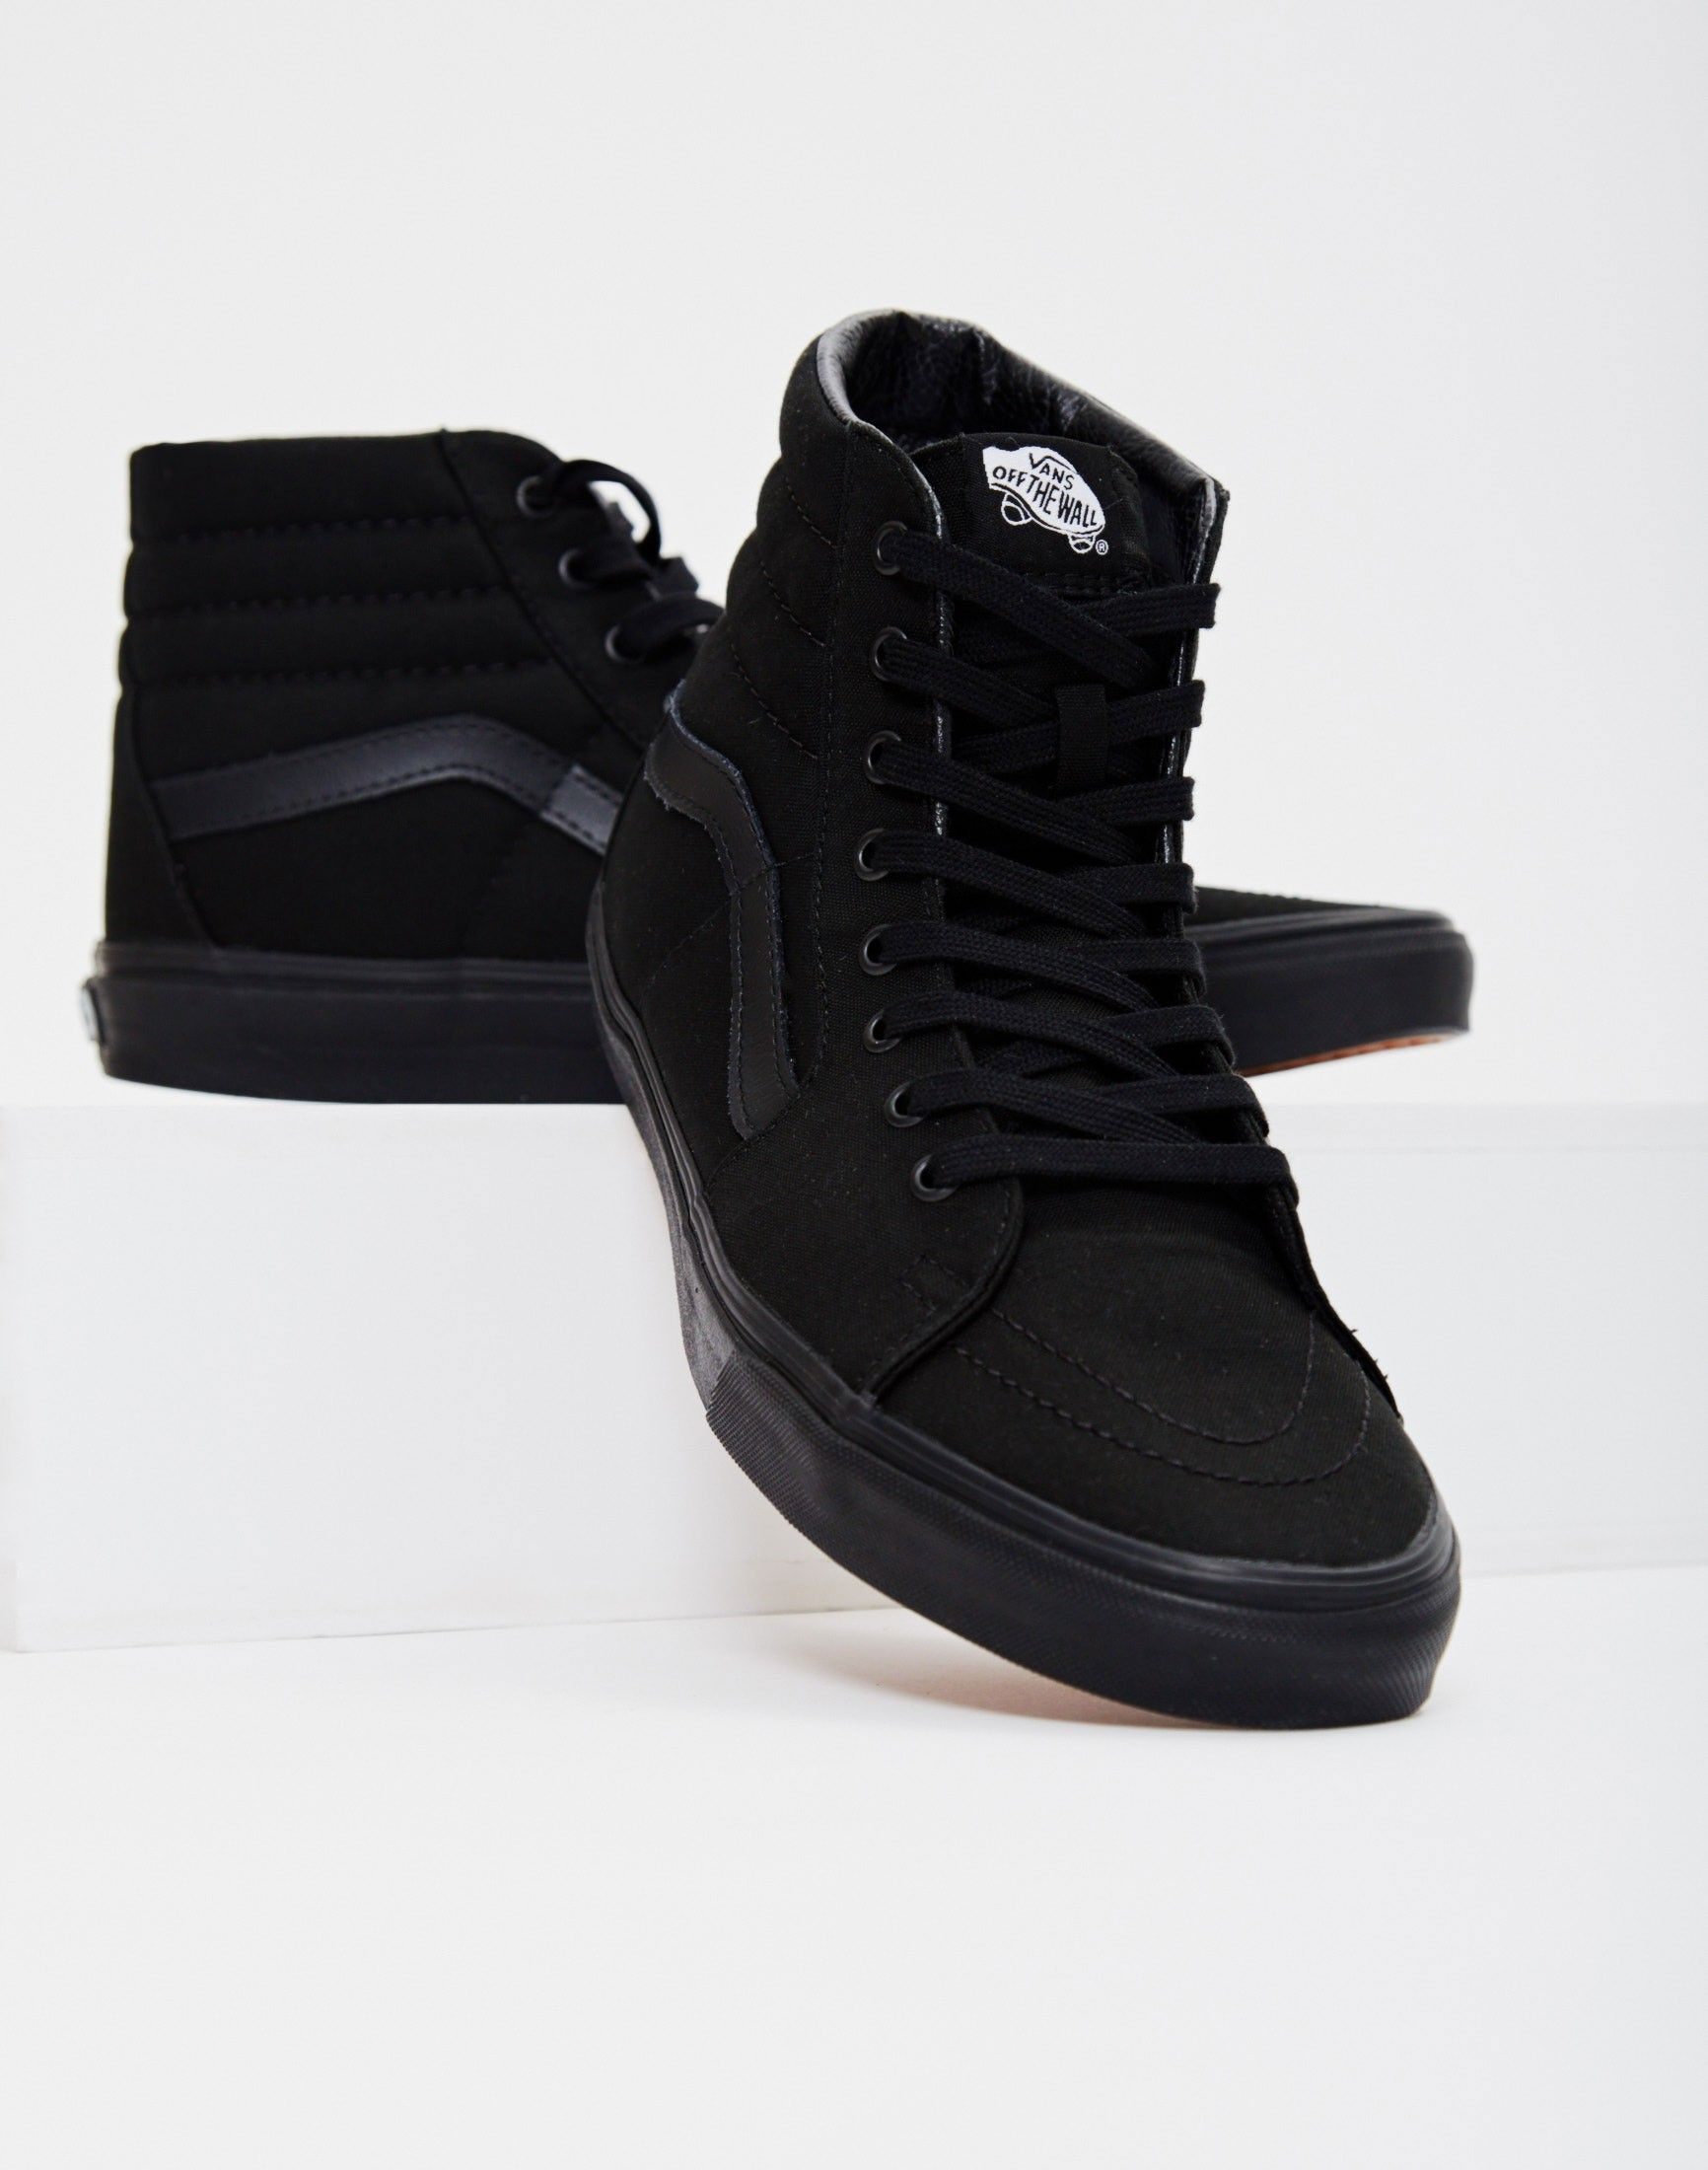 2c25faf531 Vans Sk8-Hi Trainers All Black